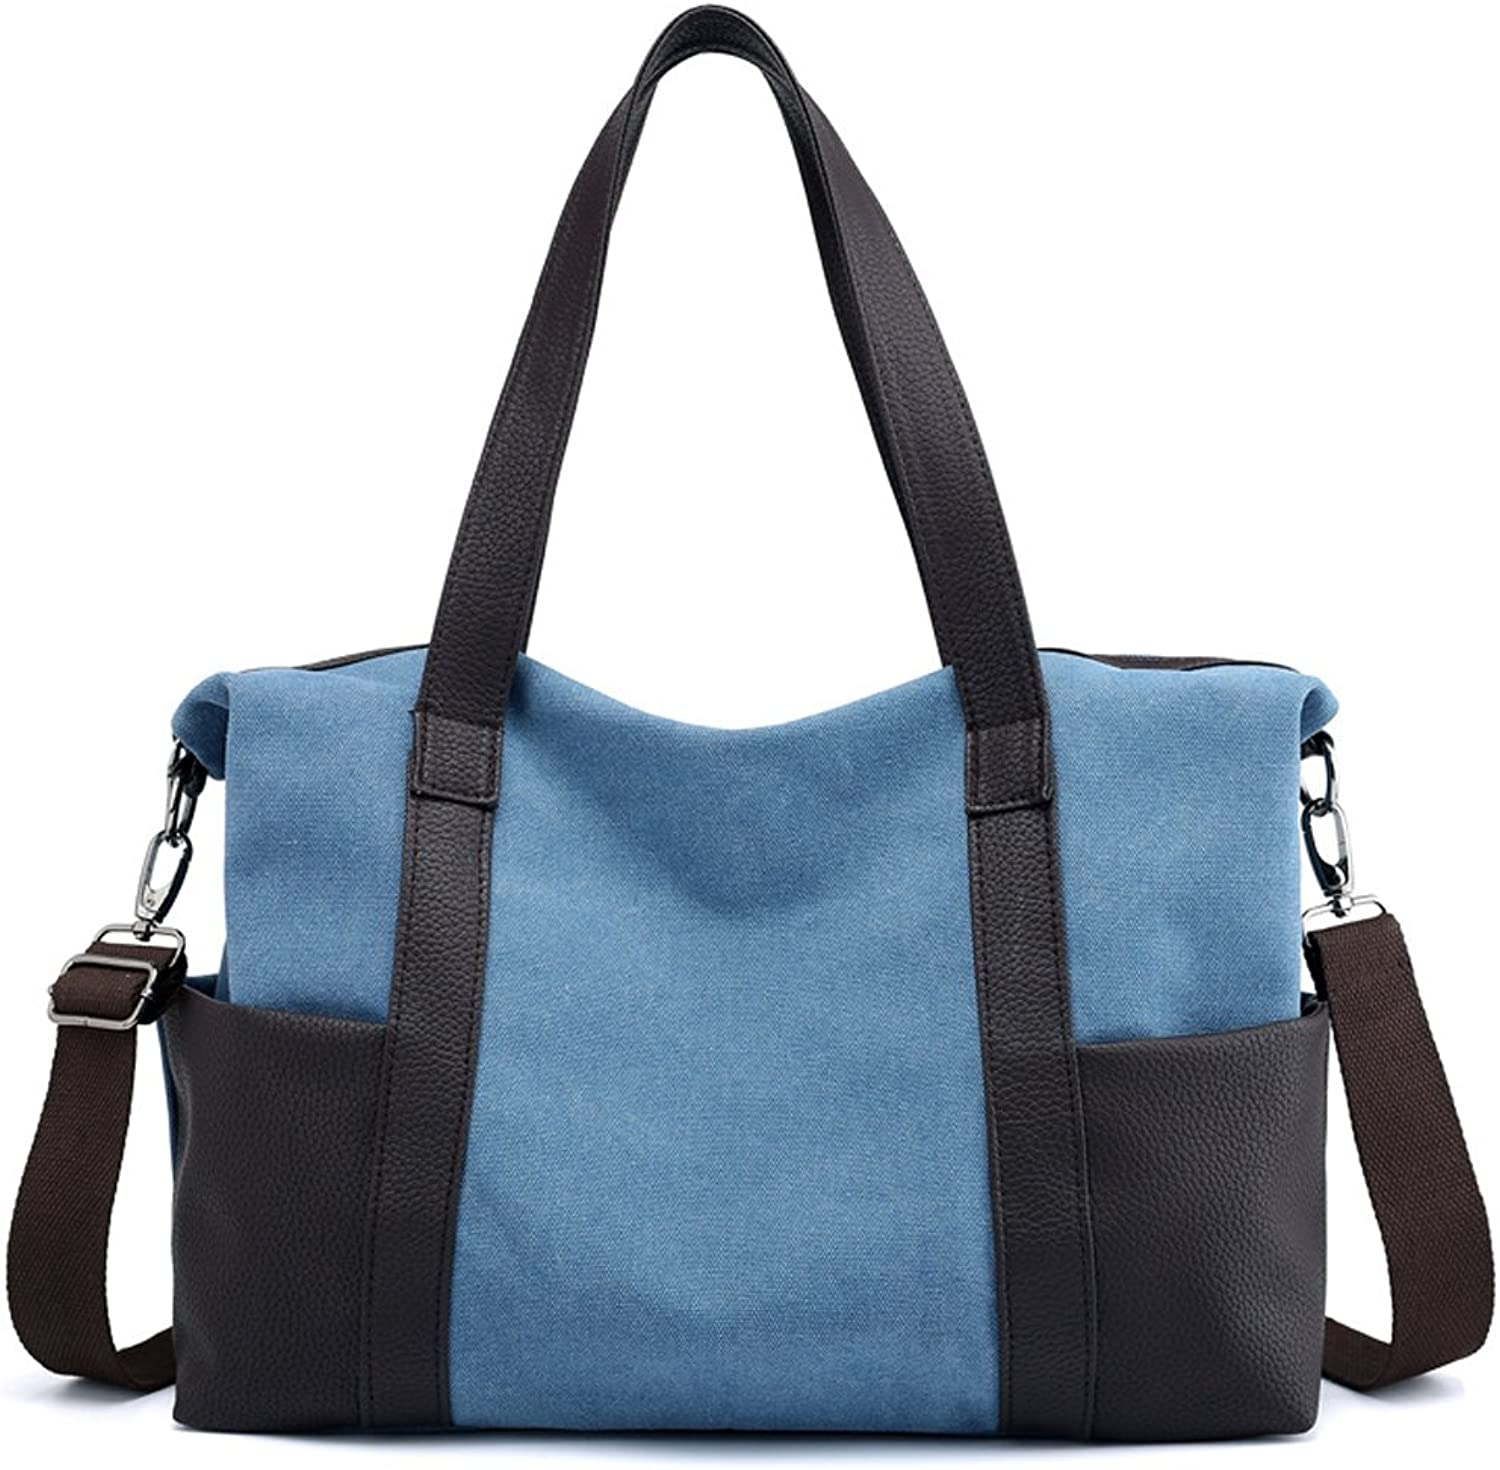 Uwelucky Women's Multipockets Shoulder Bags Fashion Canvas Messenger Bag Tote Bags